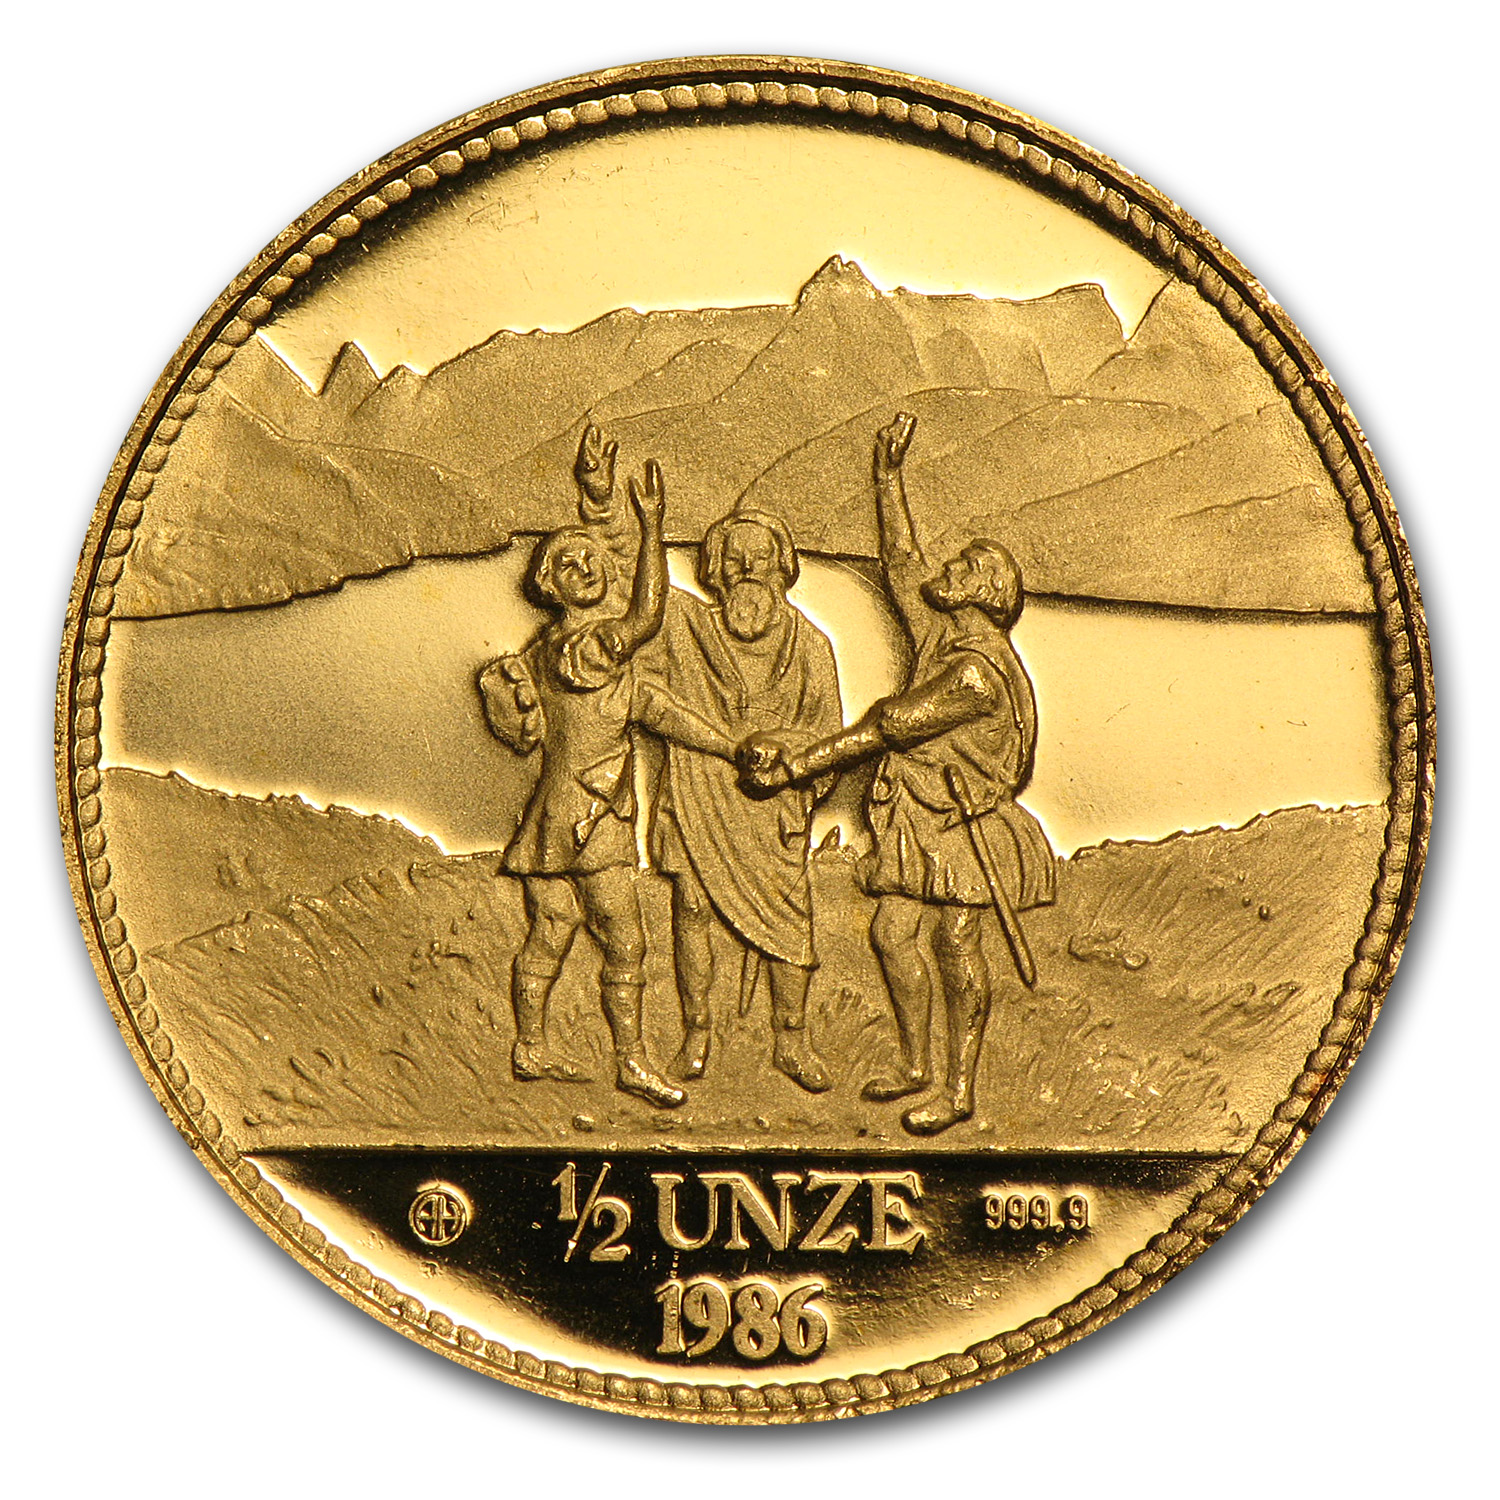 1986-1989 Switzerland 1/2 Unze Gold (Random)